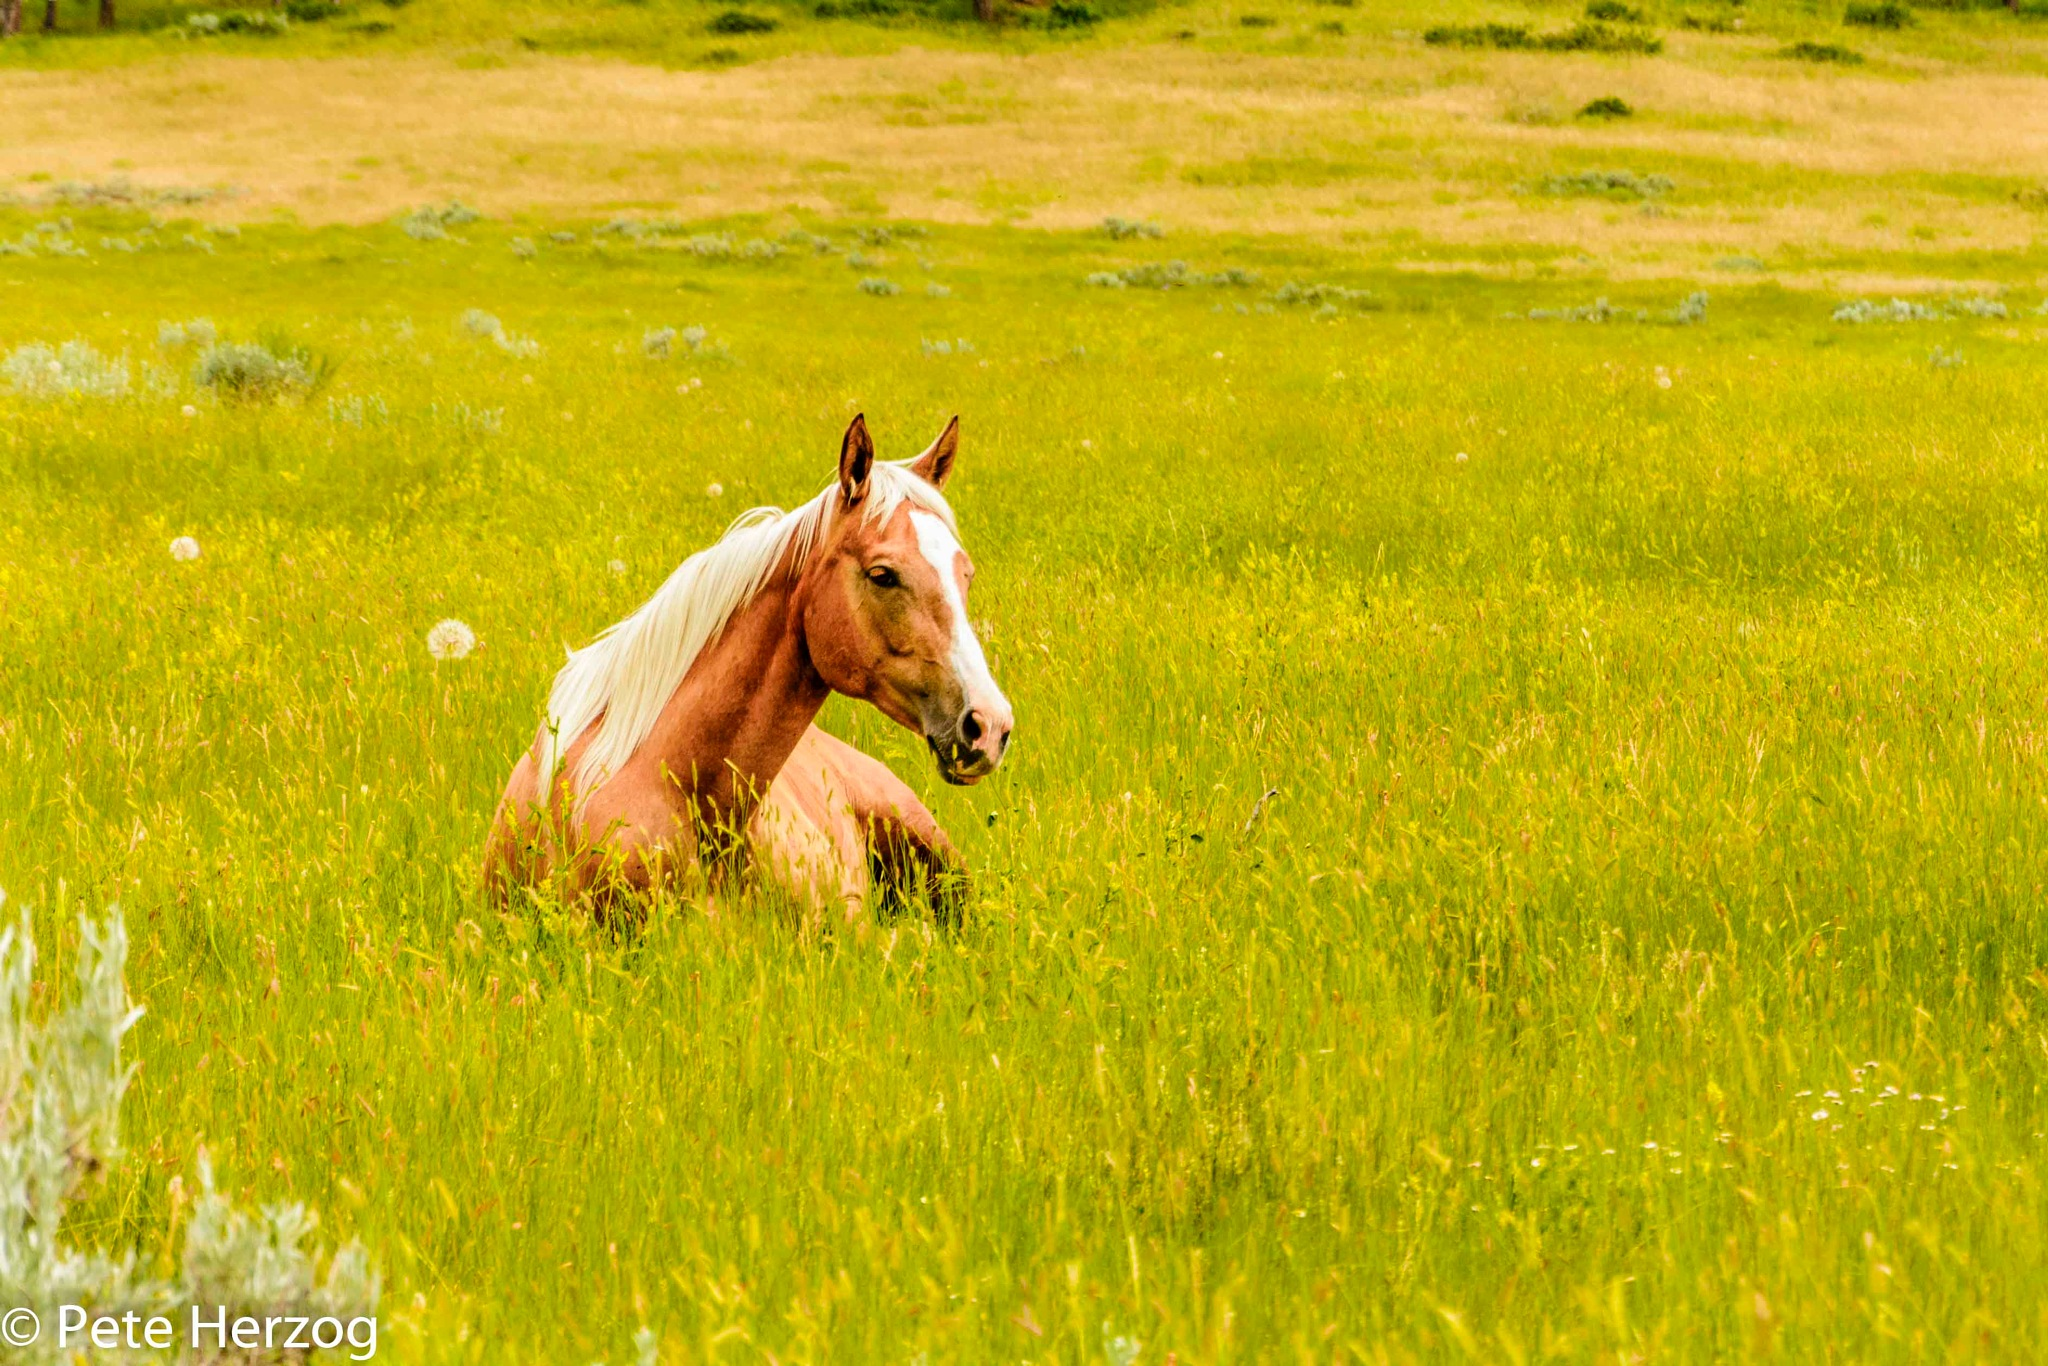 Horse Laying in Grass by peter.herzog.3323